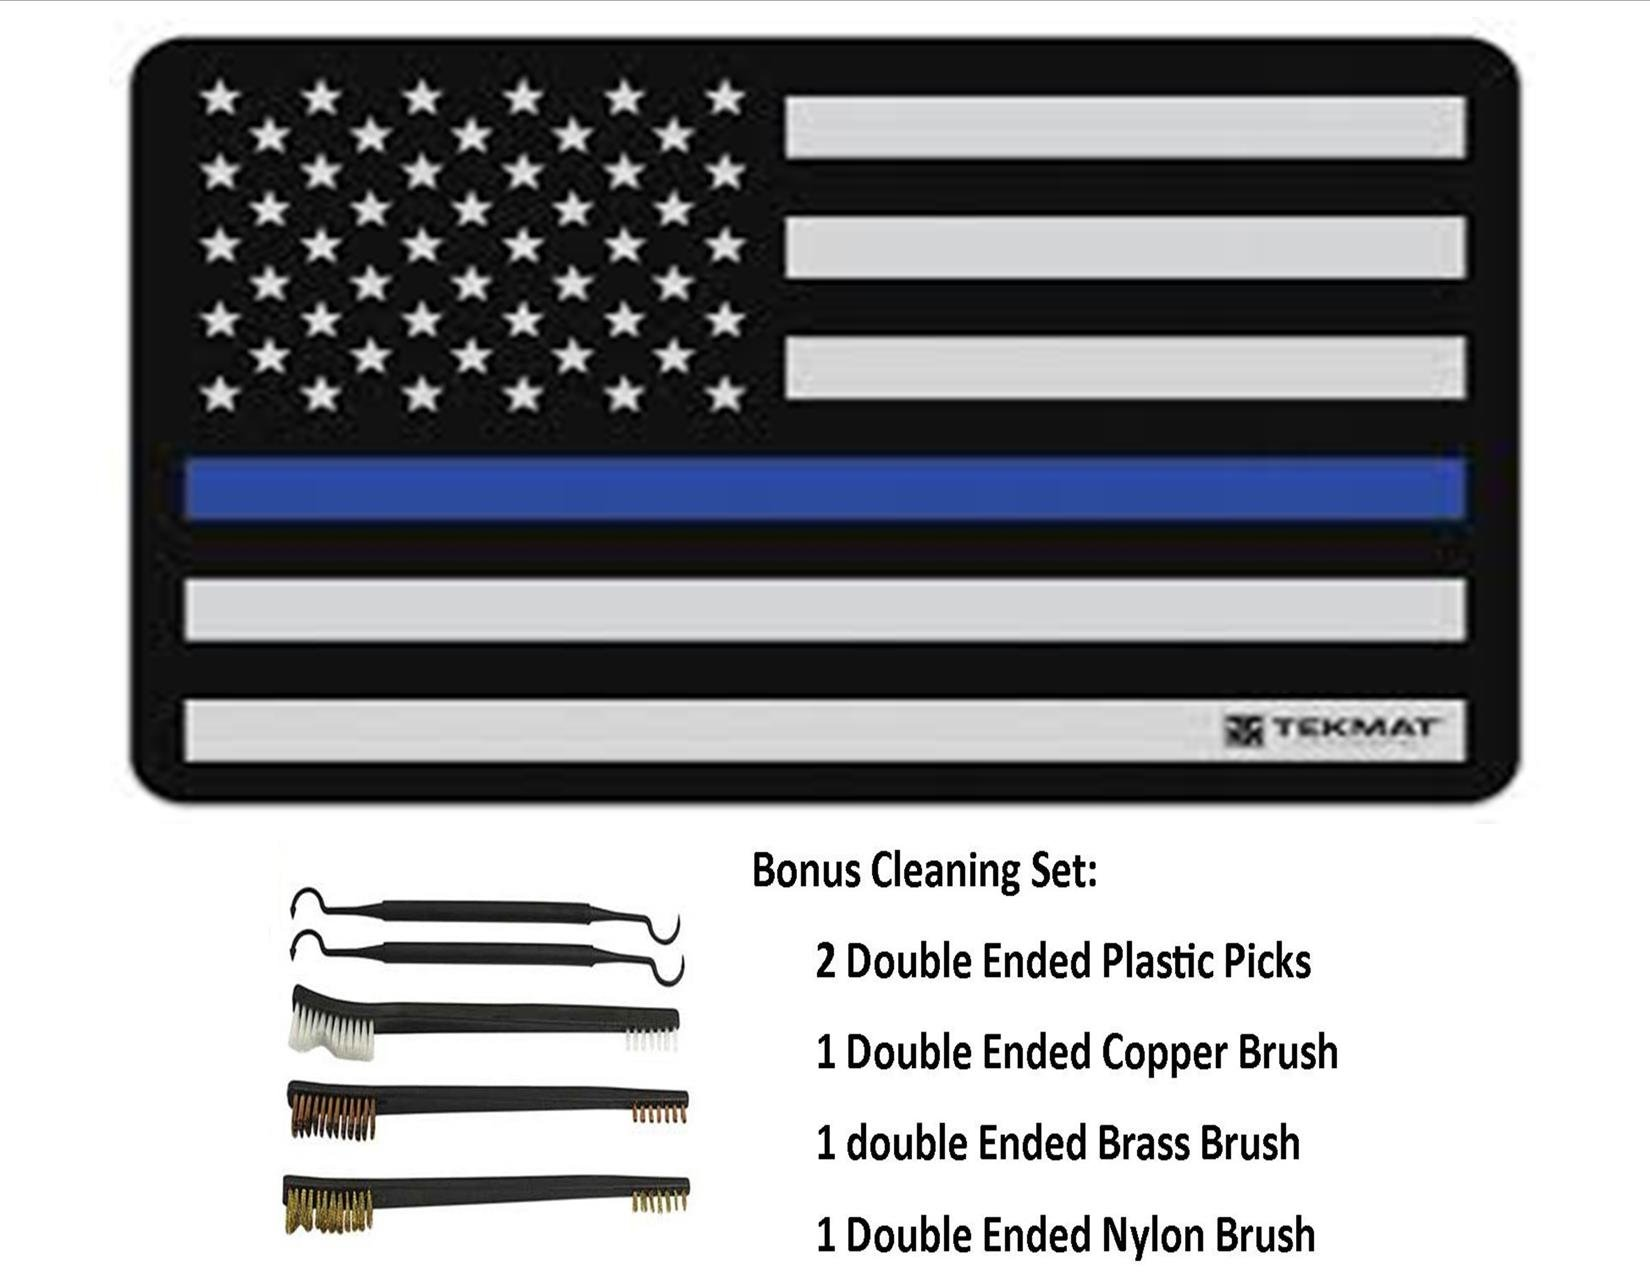 TekMat 11-Inch X 17-Inch Handgun Cleaning Mat with Police Thin Blue Line Bonus 5 oc Gun Cleaning Brush & Pick Set by EDOG (Image #1)